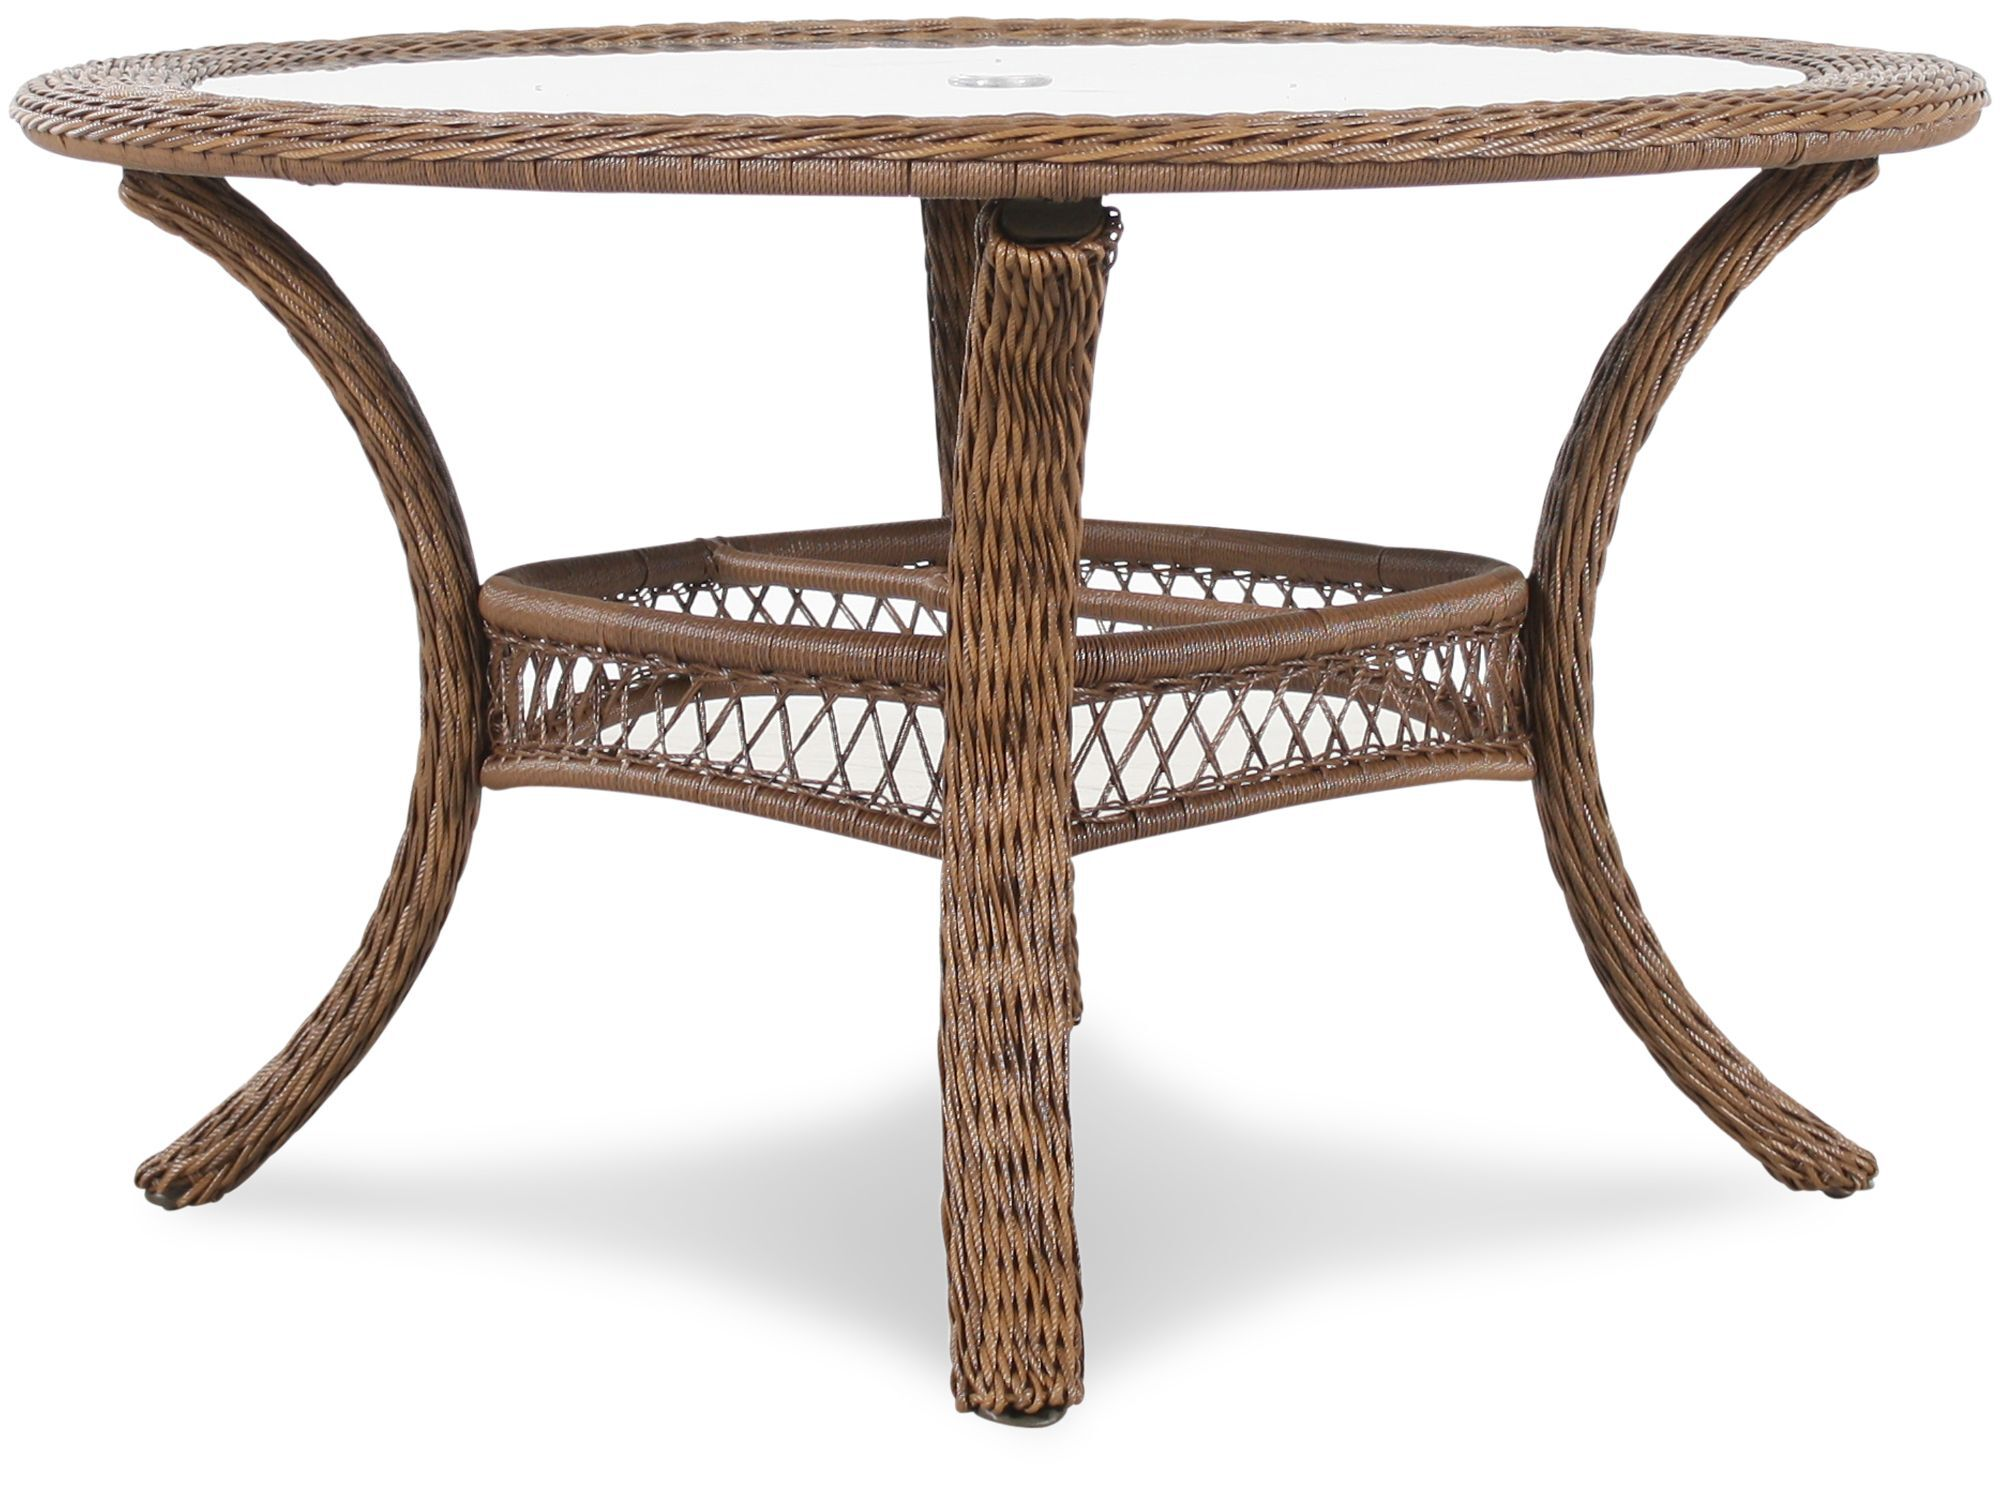 ... Mathis Brothers Outdoor Furniture Oklahoma City By Mathis Brothers  Outdoor Furniture Oklahoma City Outdoor ...